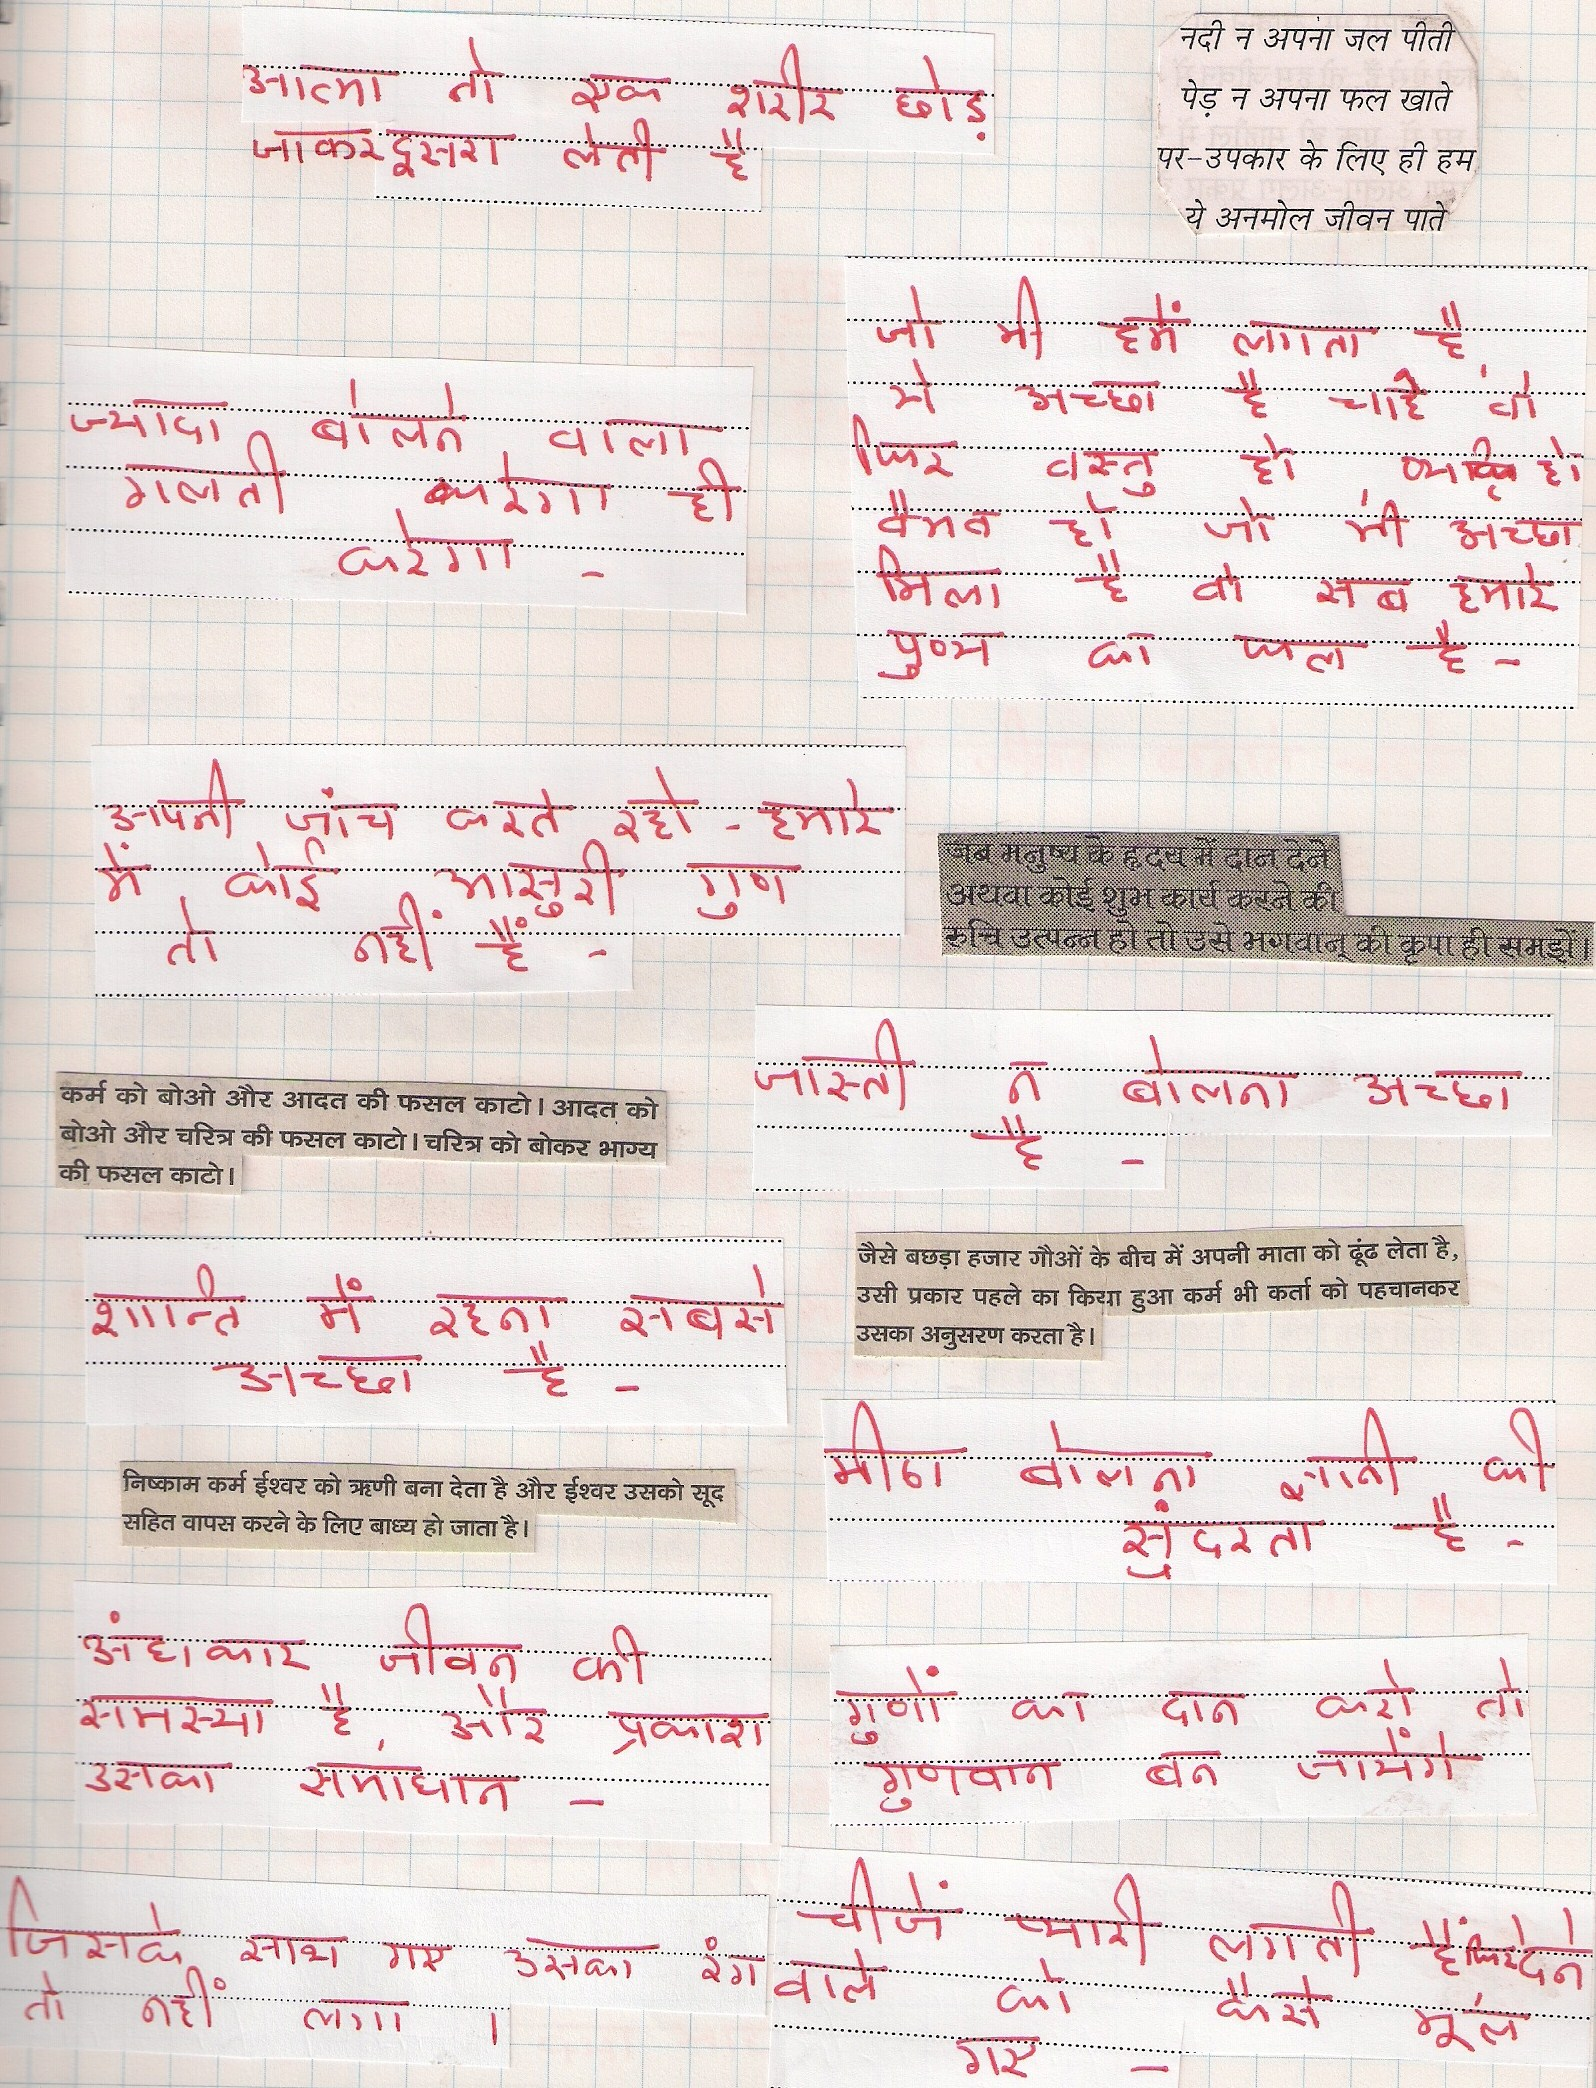 Aids Awareness Posters In Hindi Hindi Spiritual One Liners Quotes Short Stories All